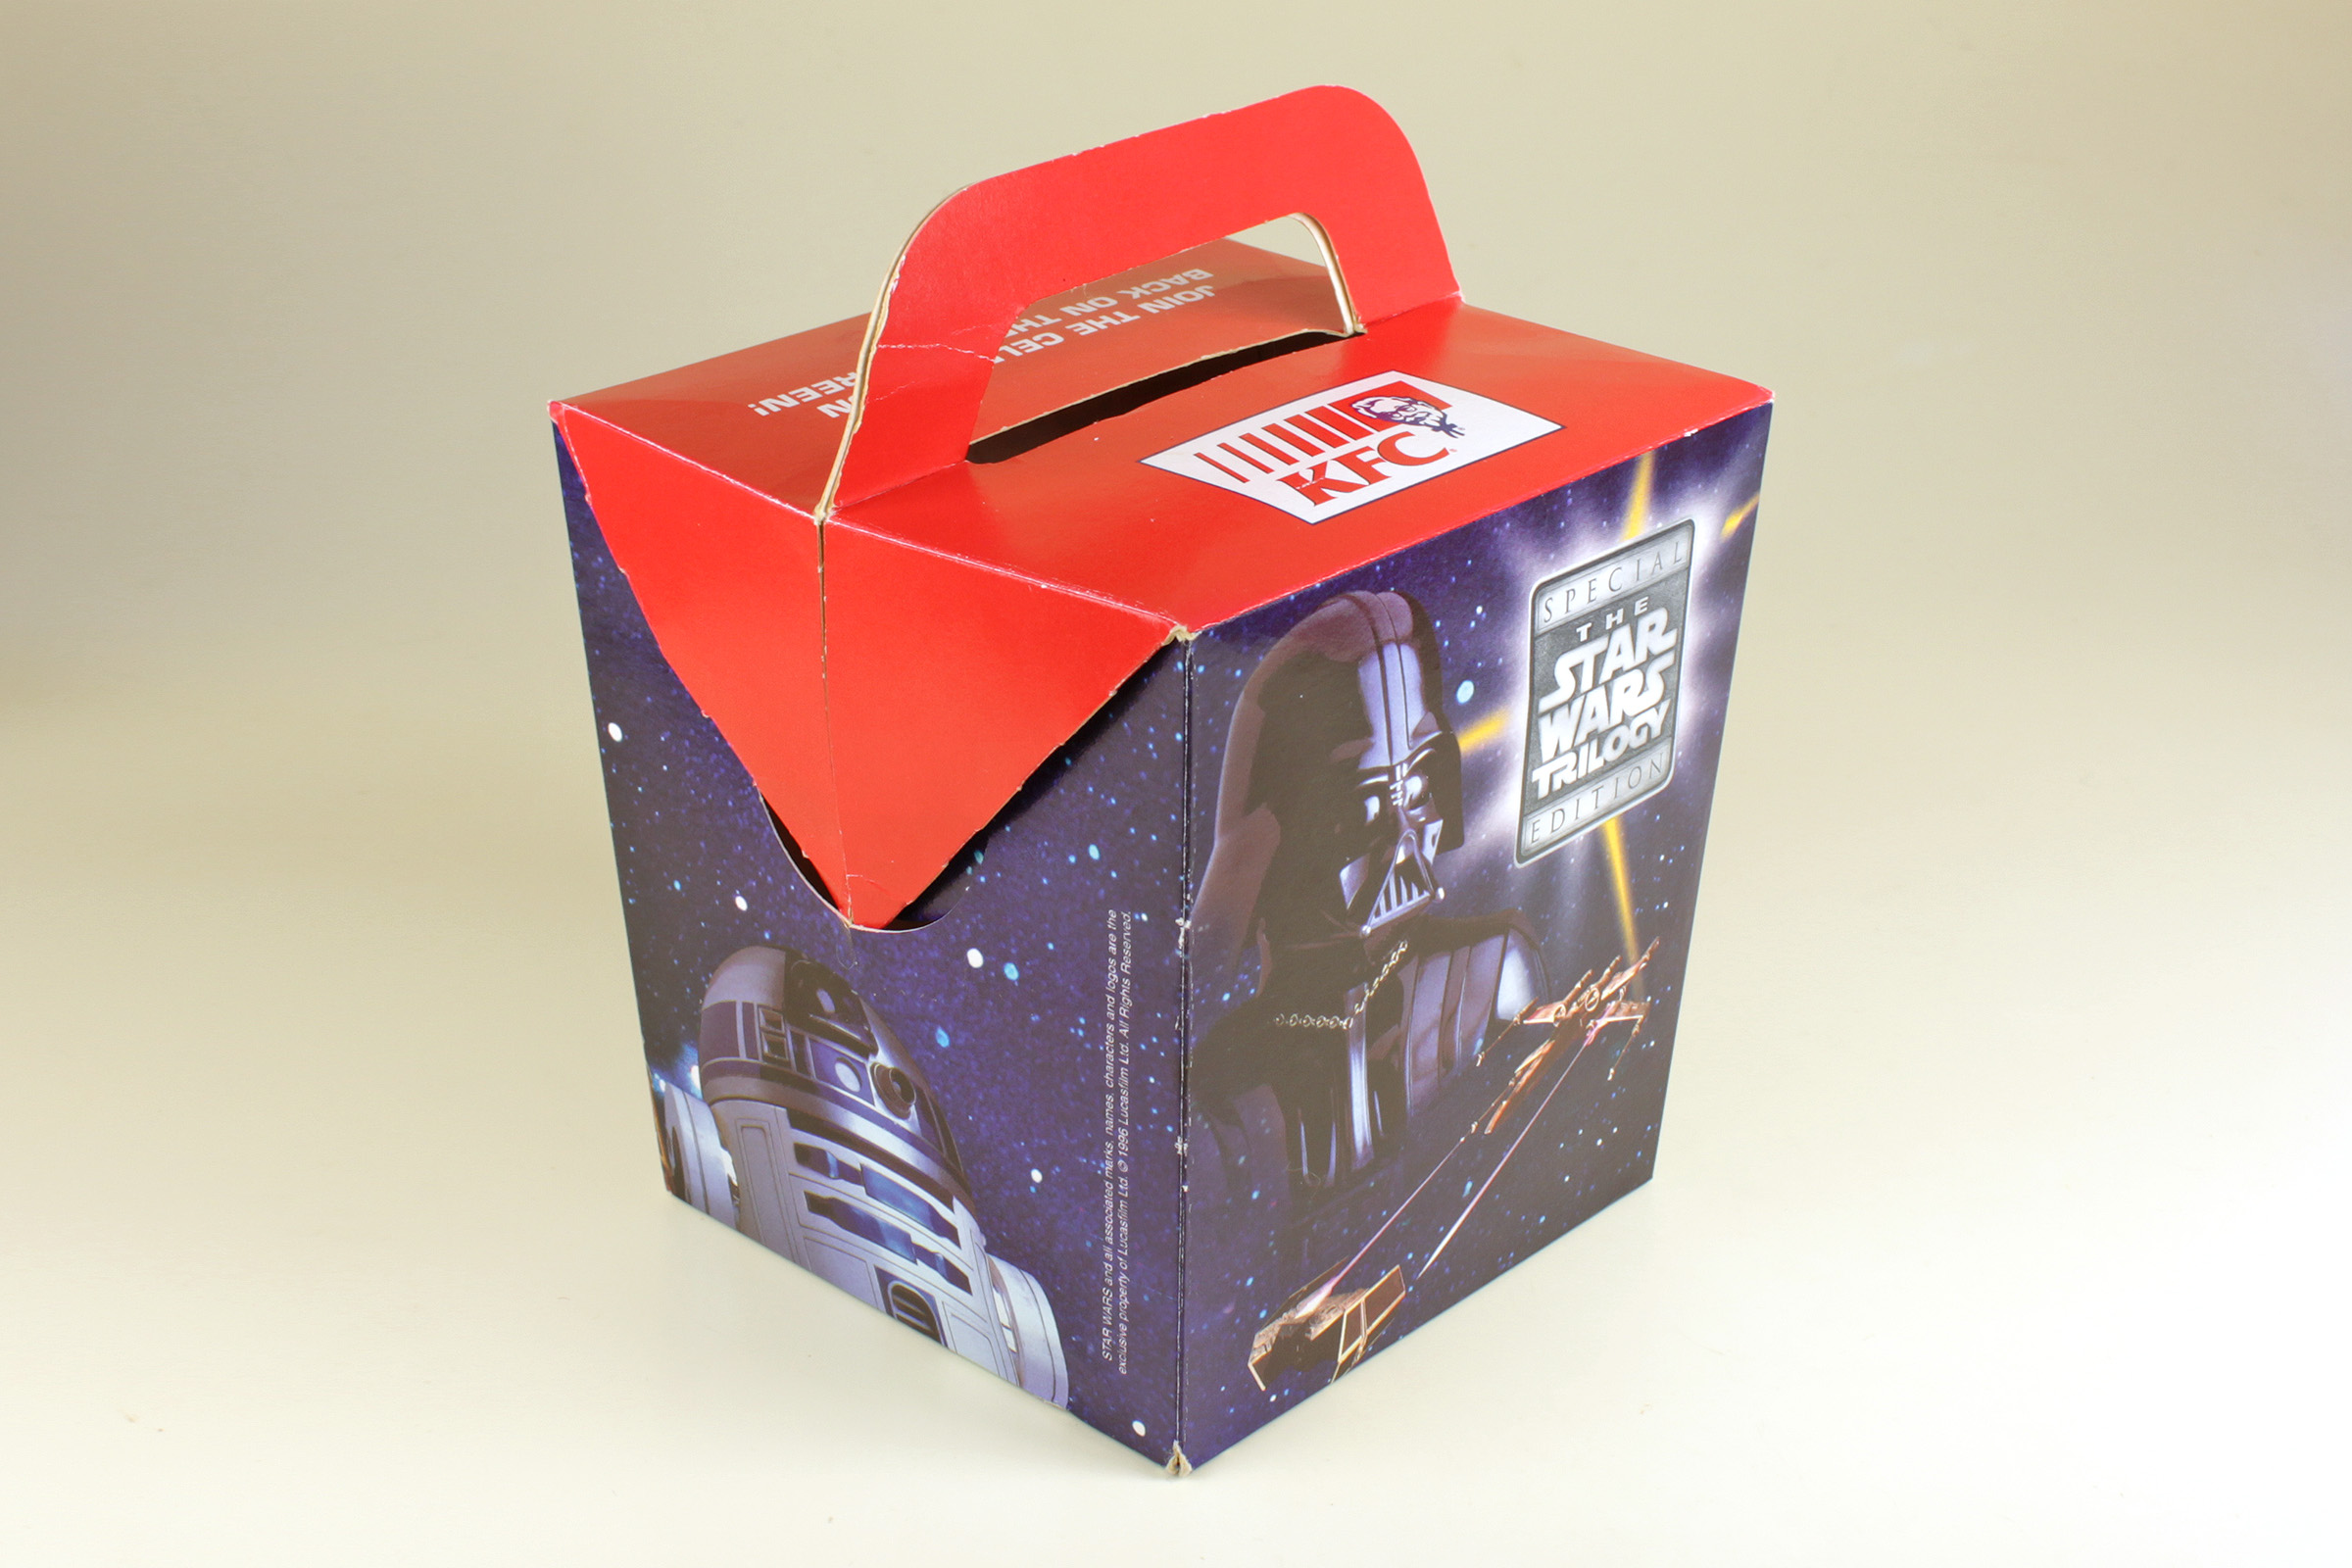 KFC Kid's Meal Box